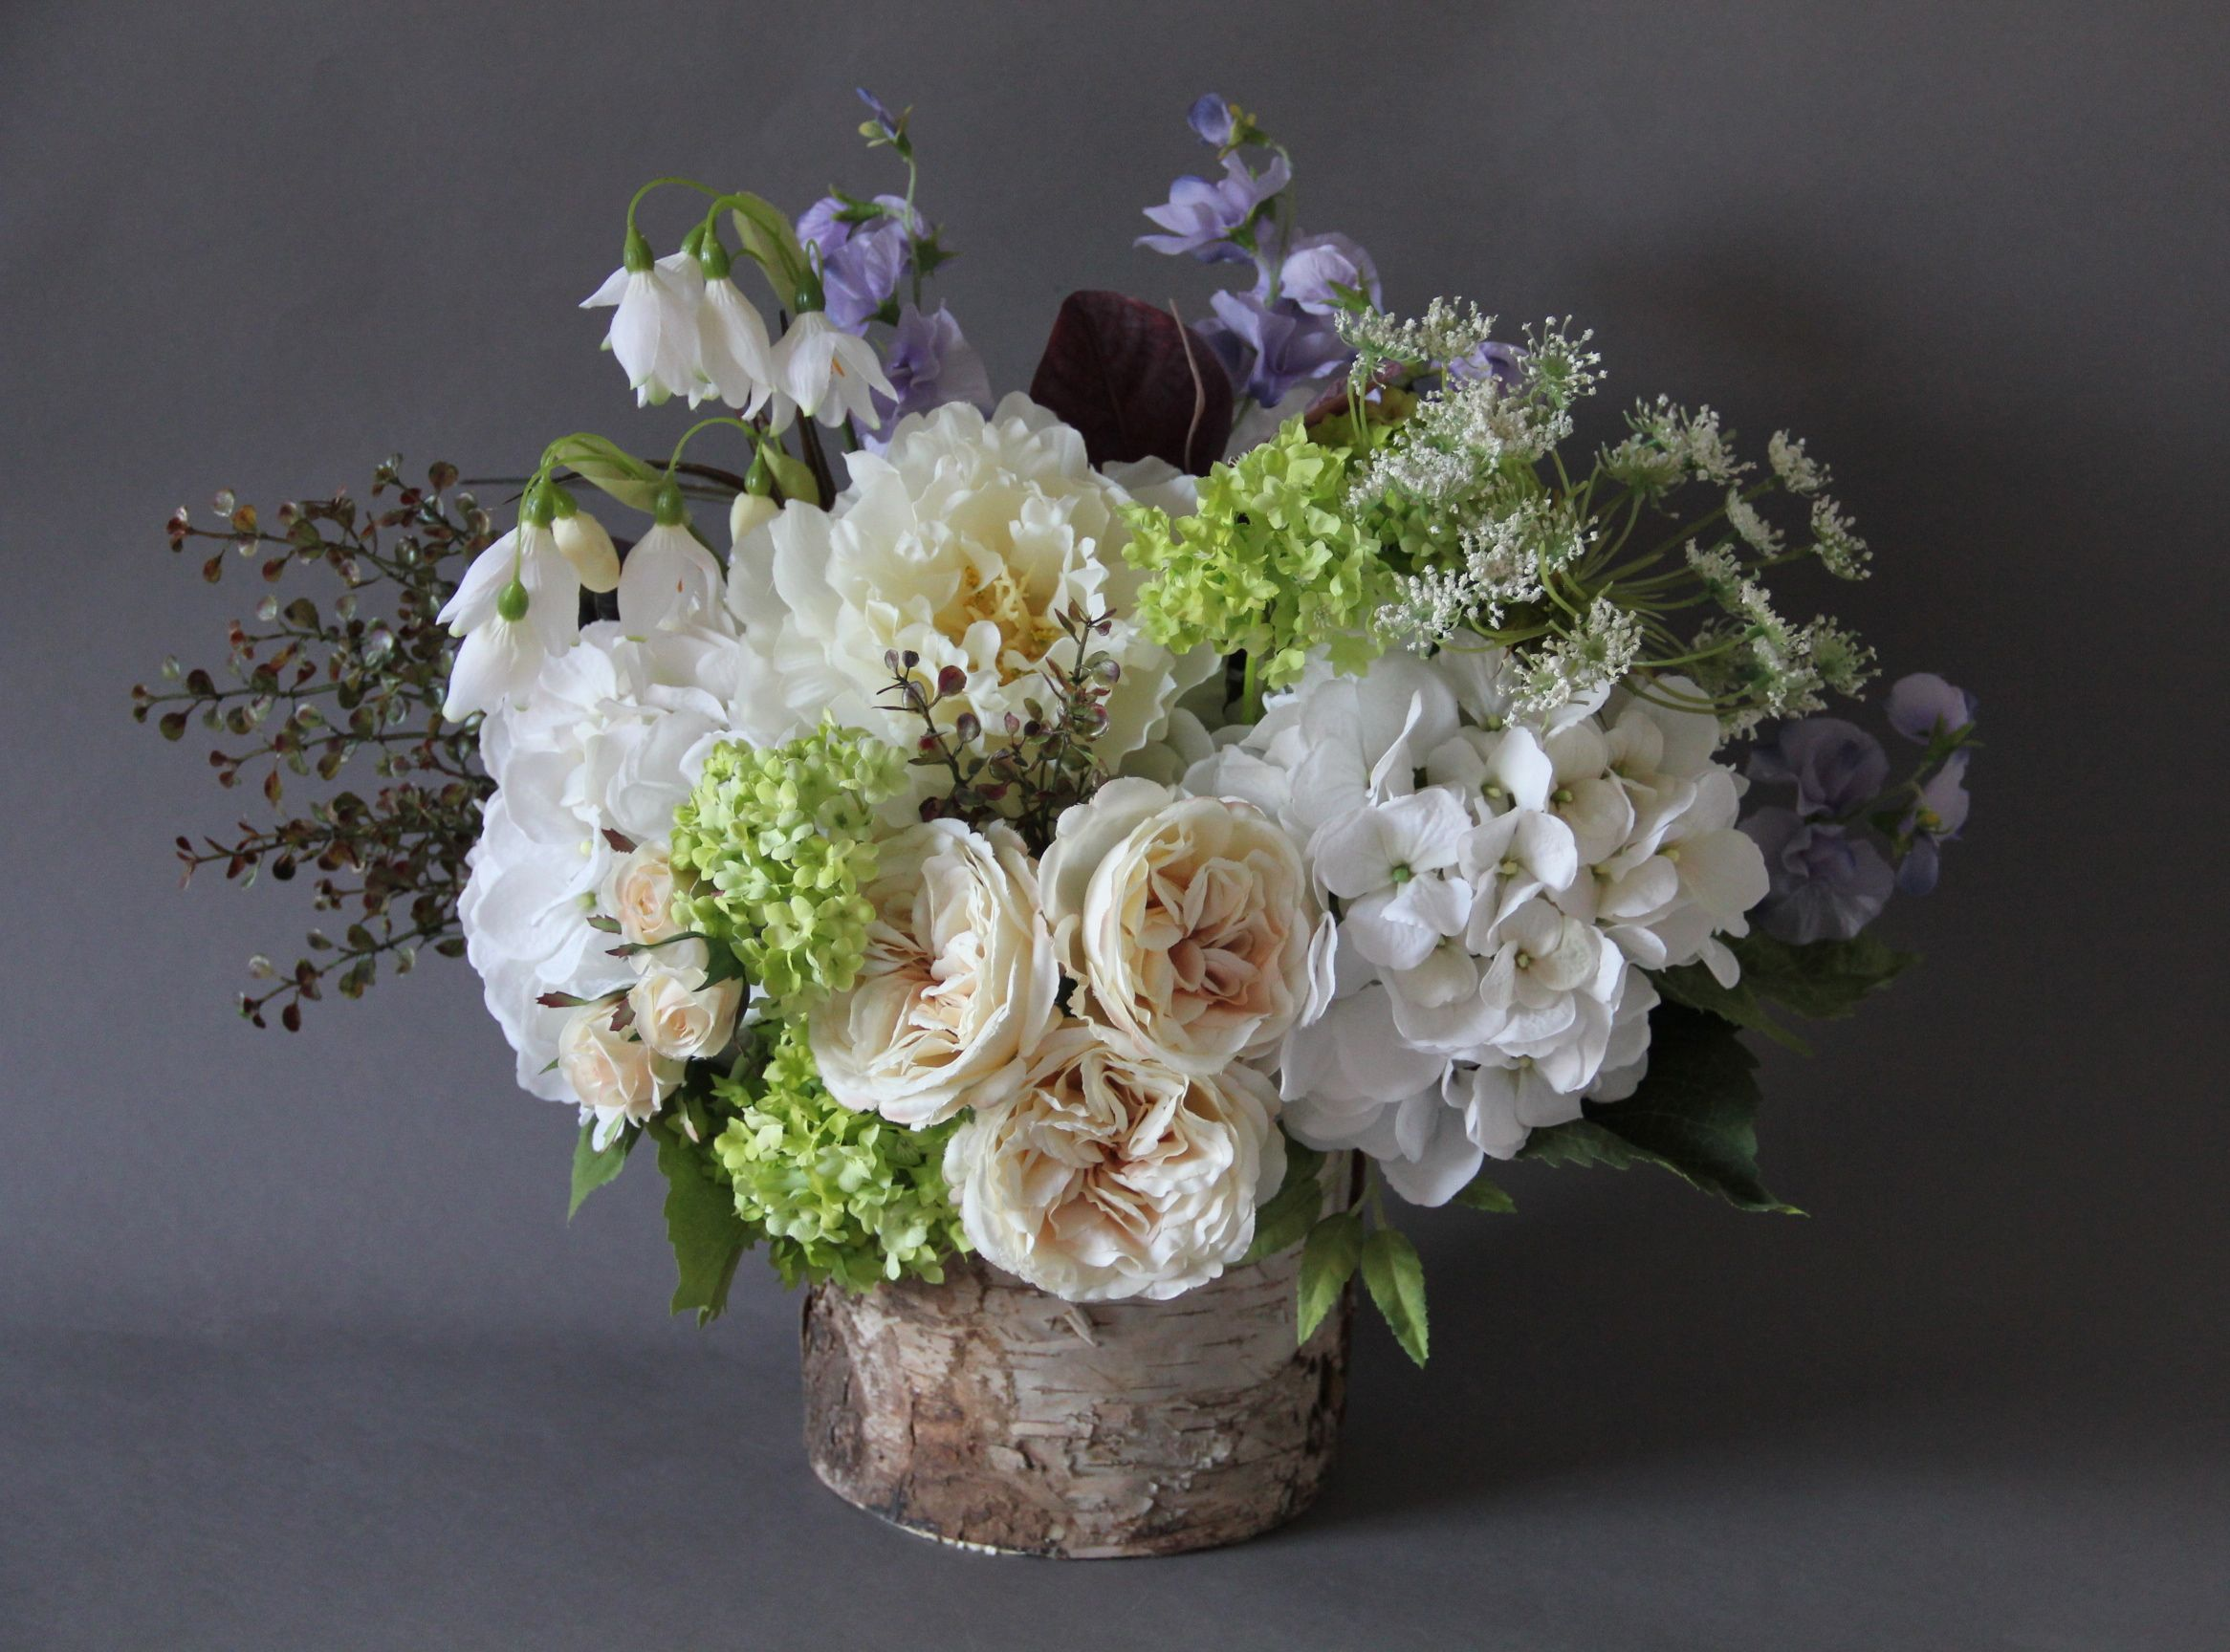 Artificial silk flowers arrangement white hydrangeagarden roses artificial silk flowers arrangement white hydrangeagarden roses viburnumsweet pea mightylinksfo Gallery